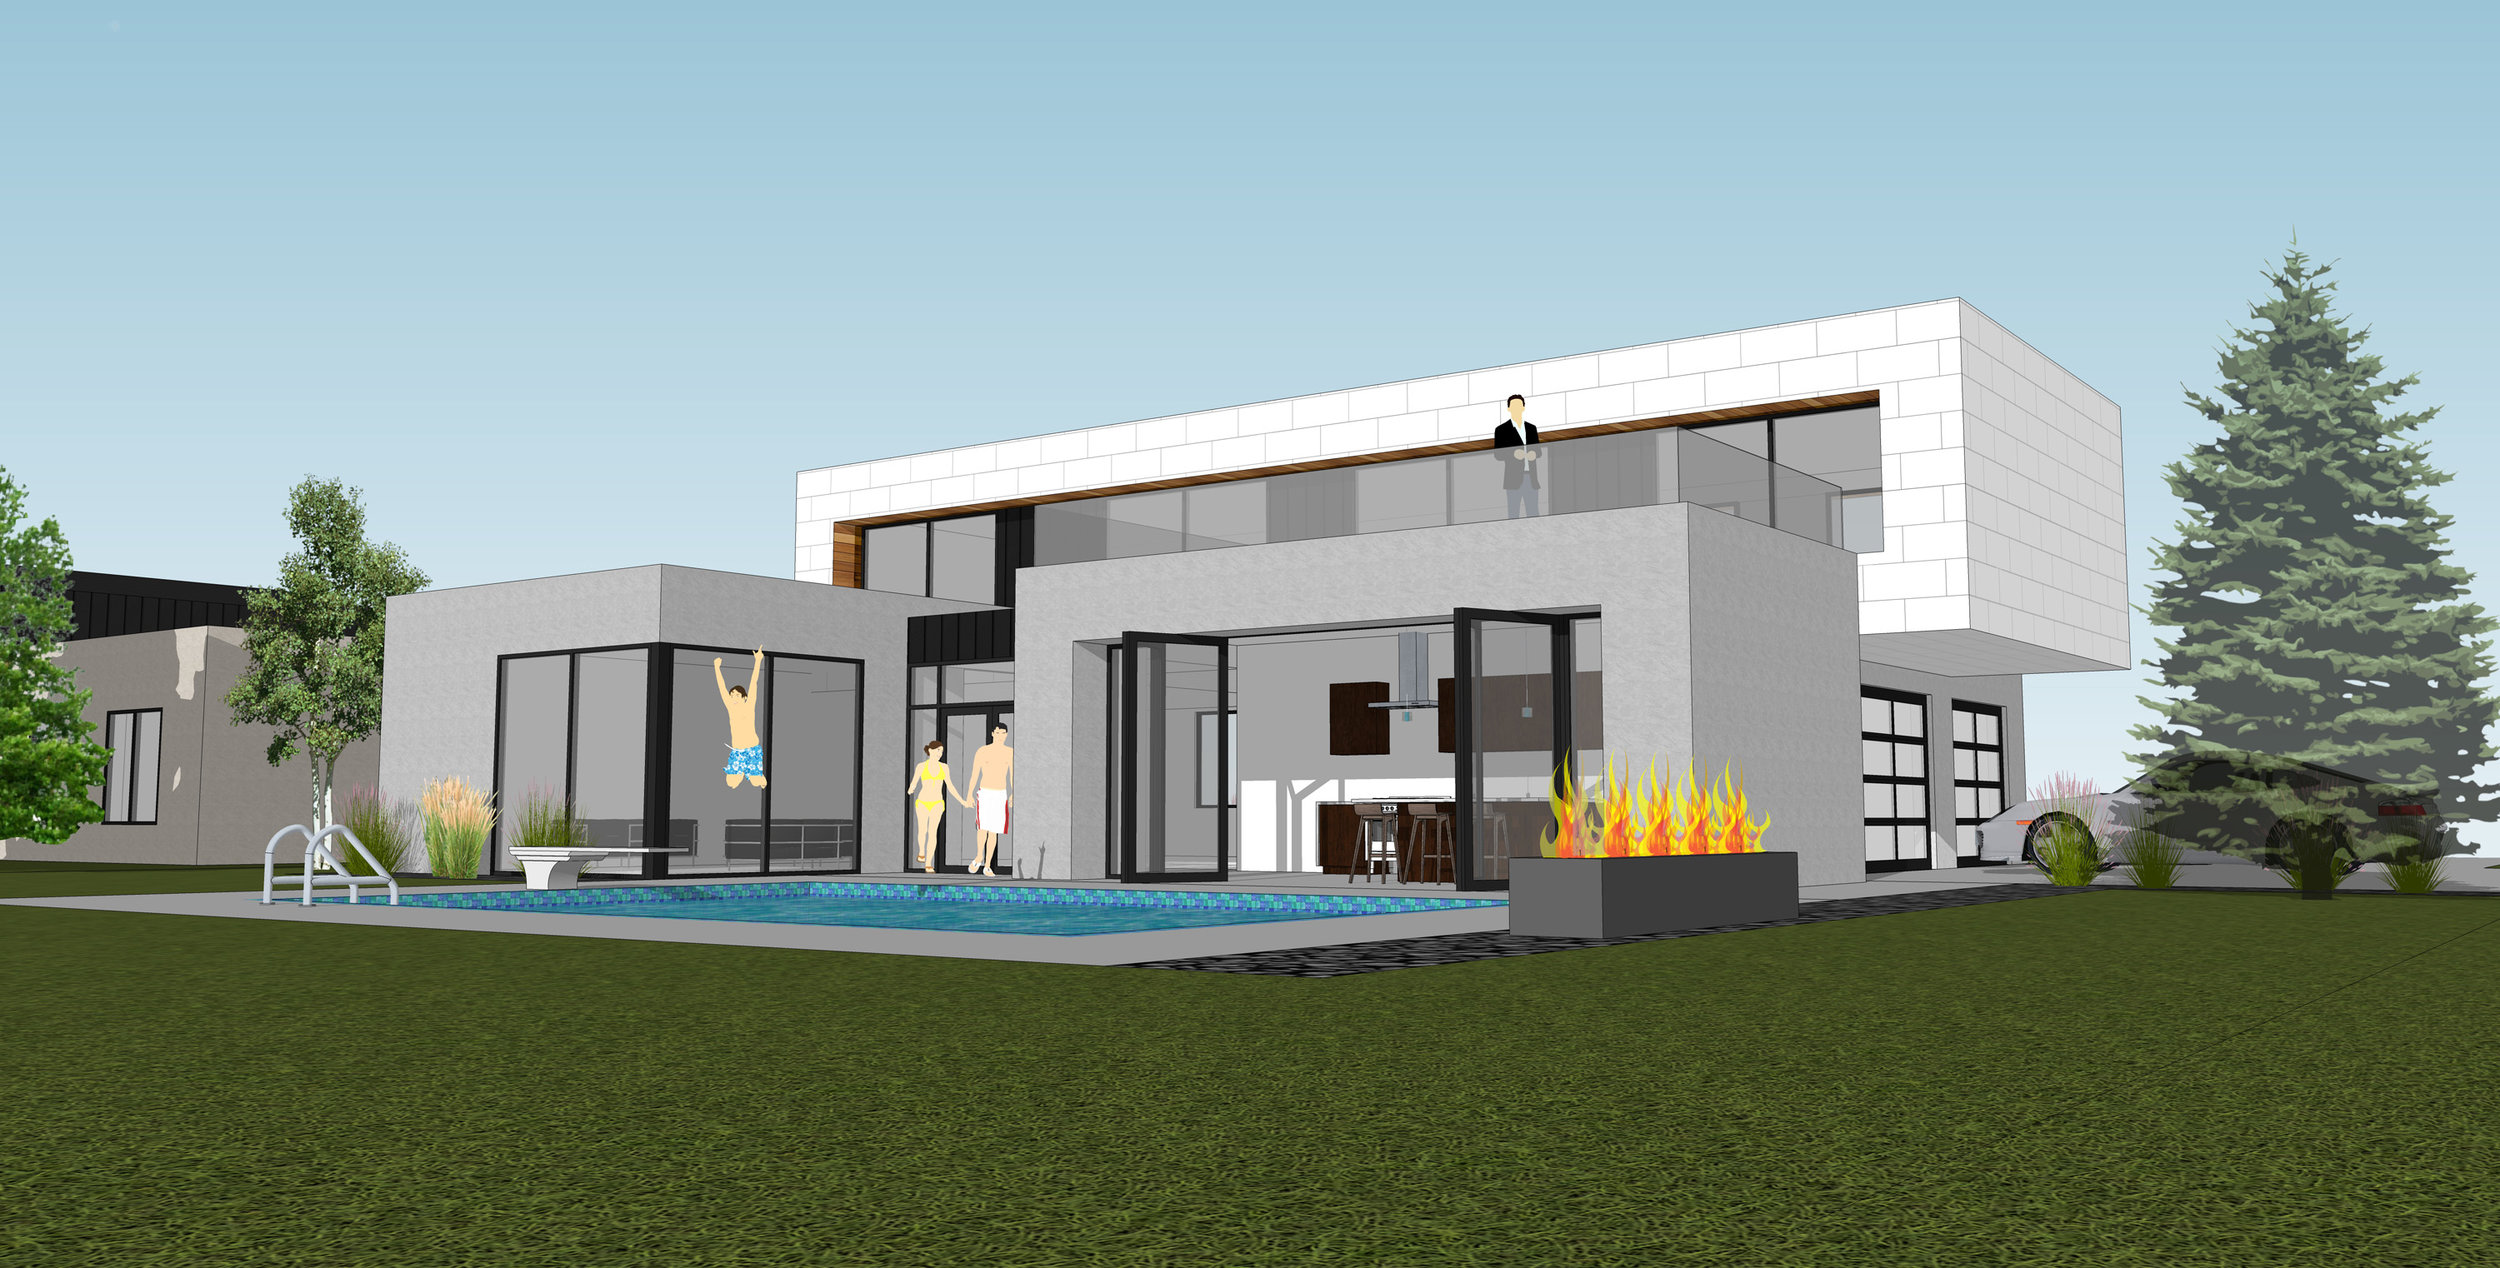 House 1b finished designs.jpg